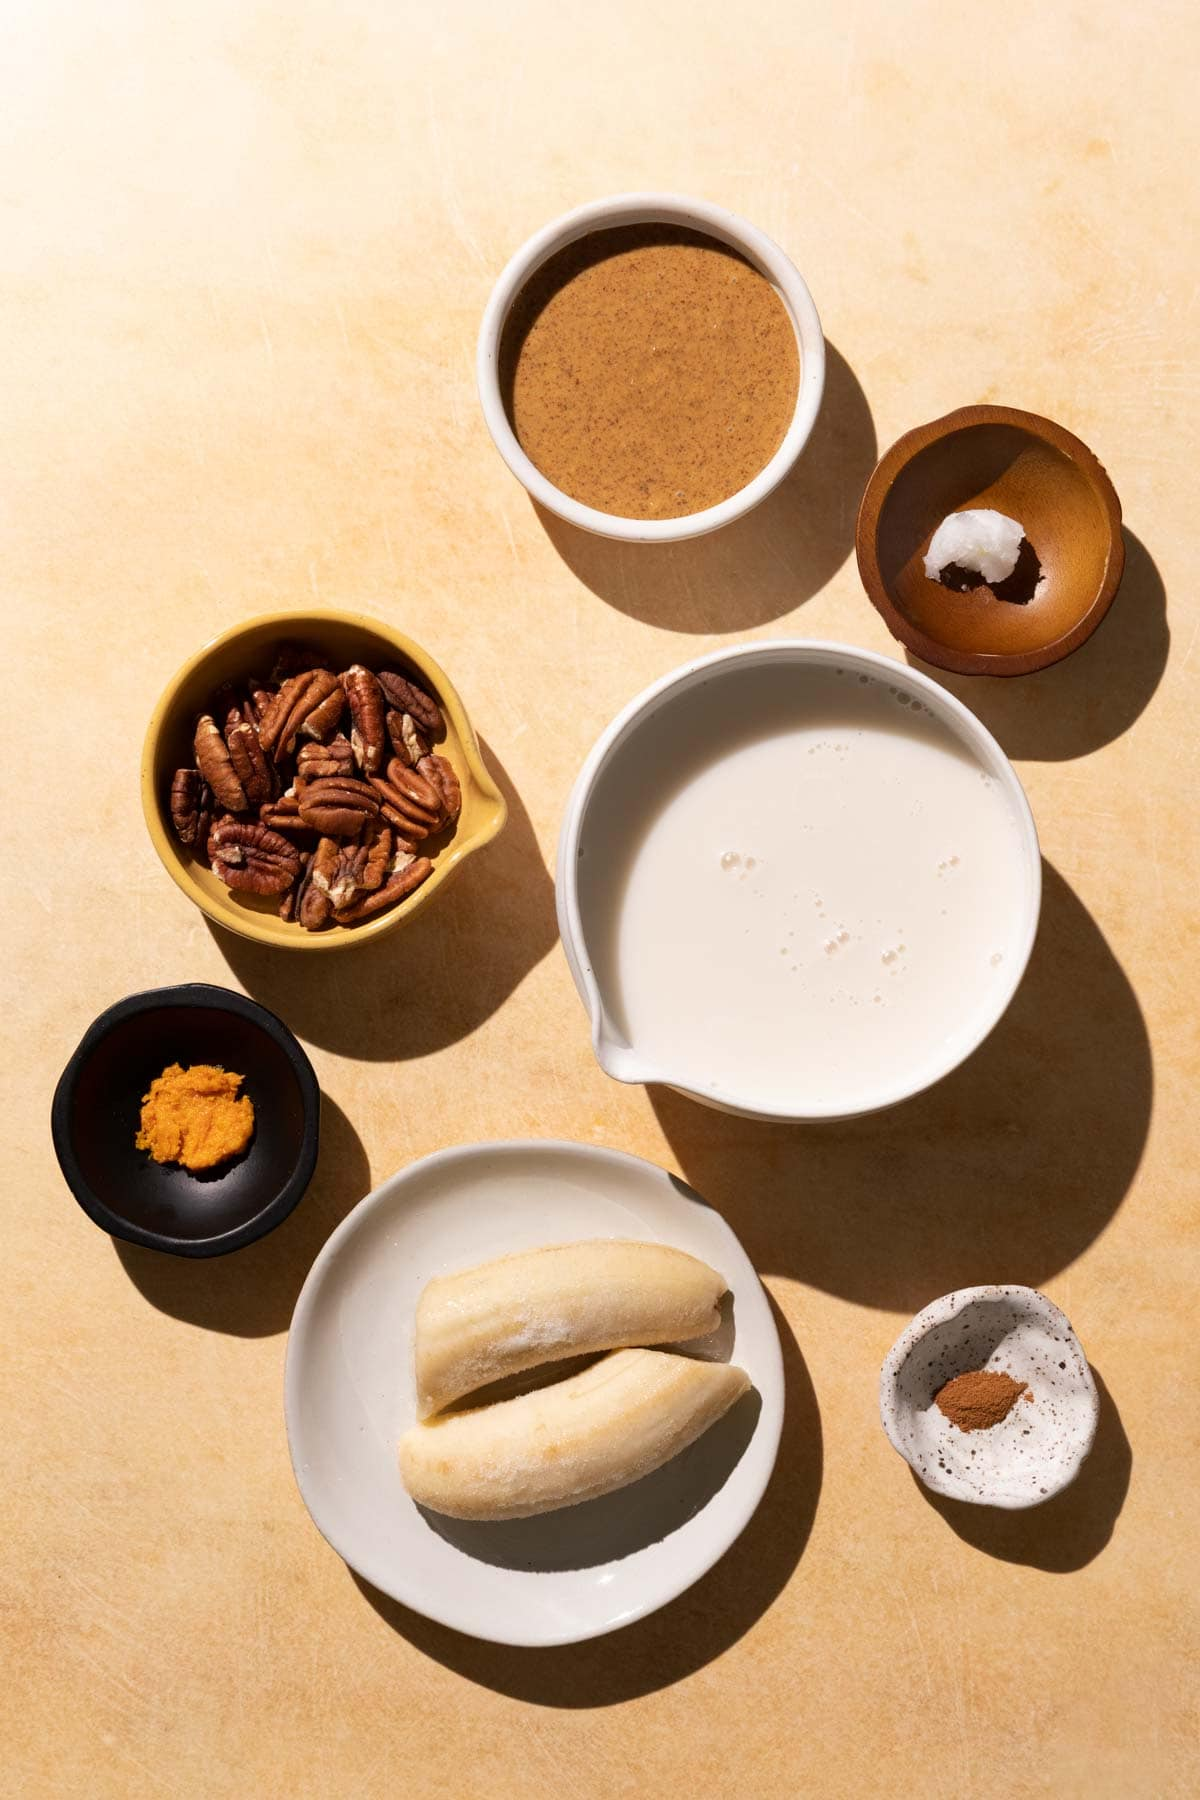 Ingredients for Banana Bread smoothie in bowls on a yellow background